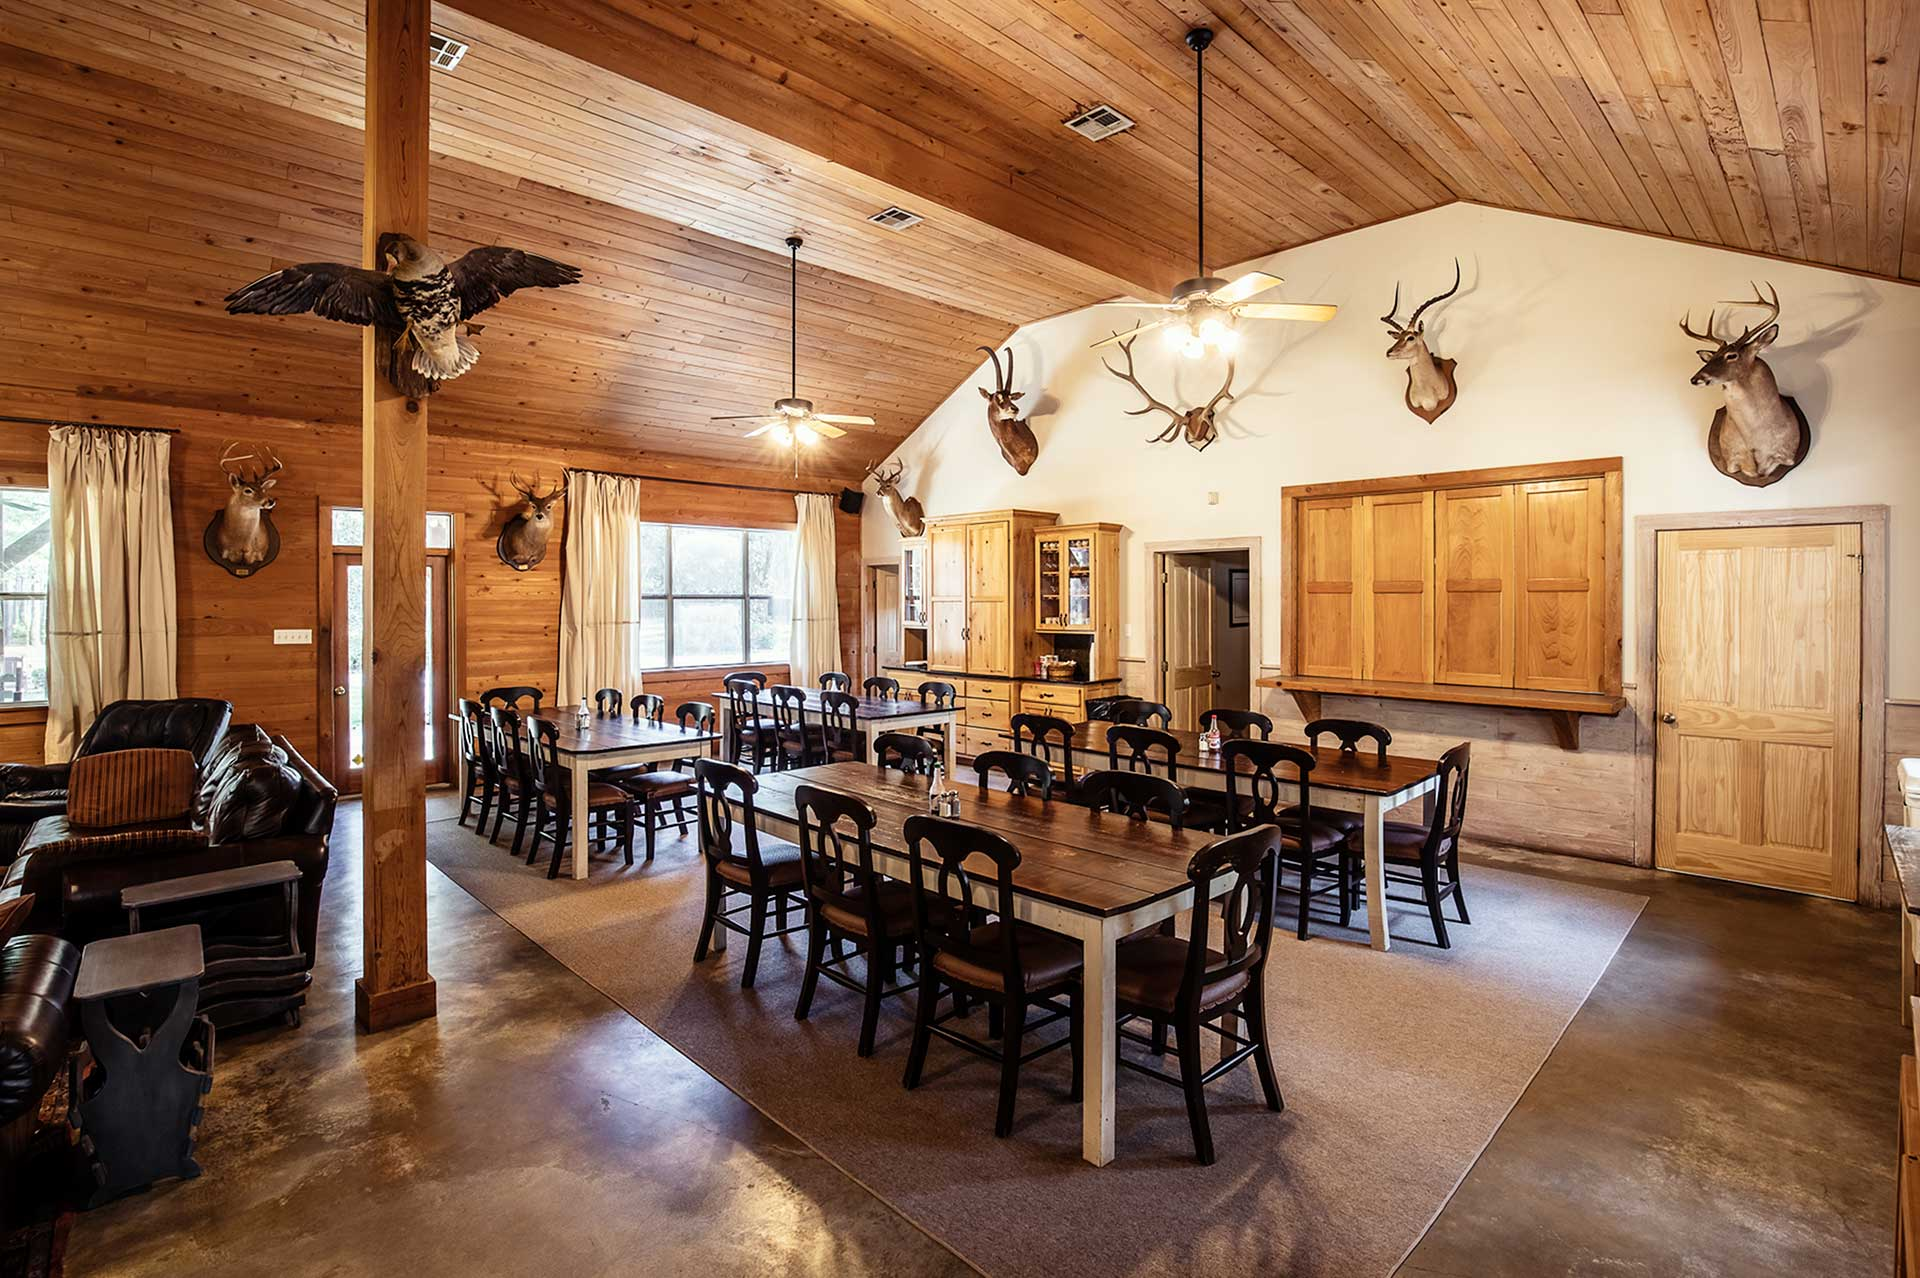 The interior of Covey Rise Lodge's main lodge cabin with table and chairs.